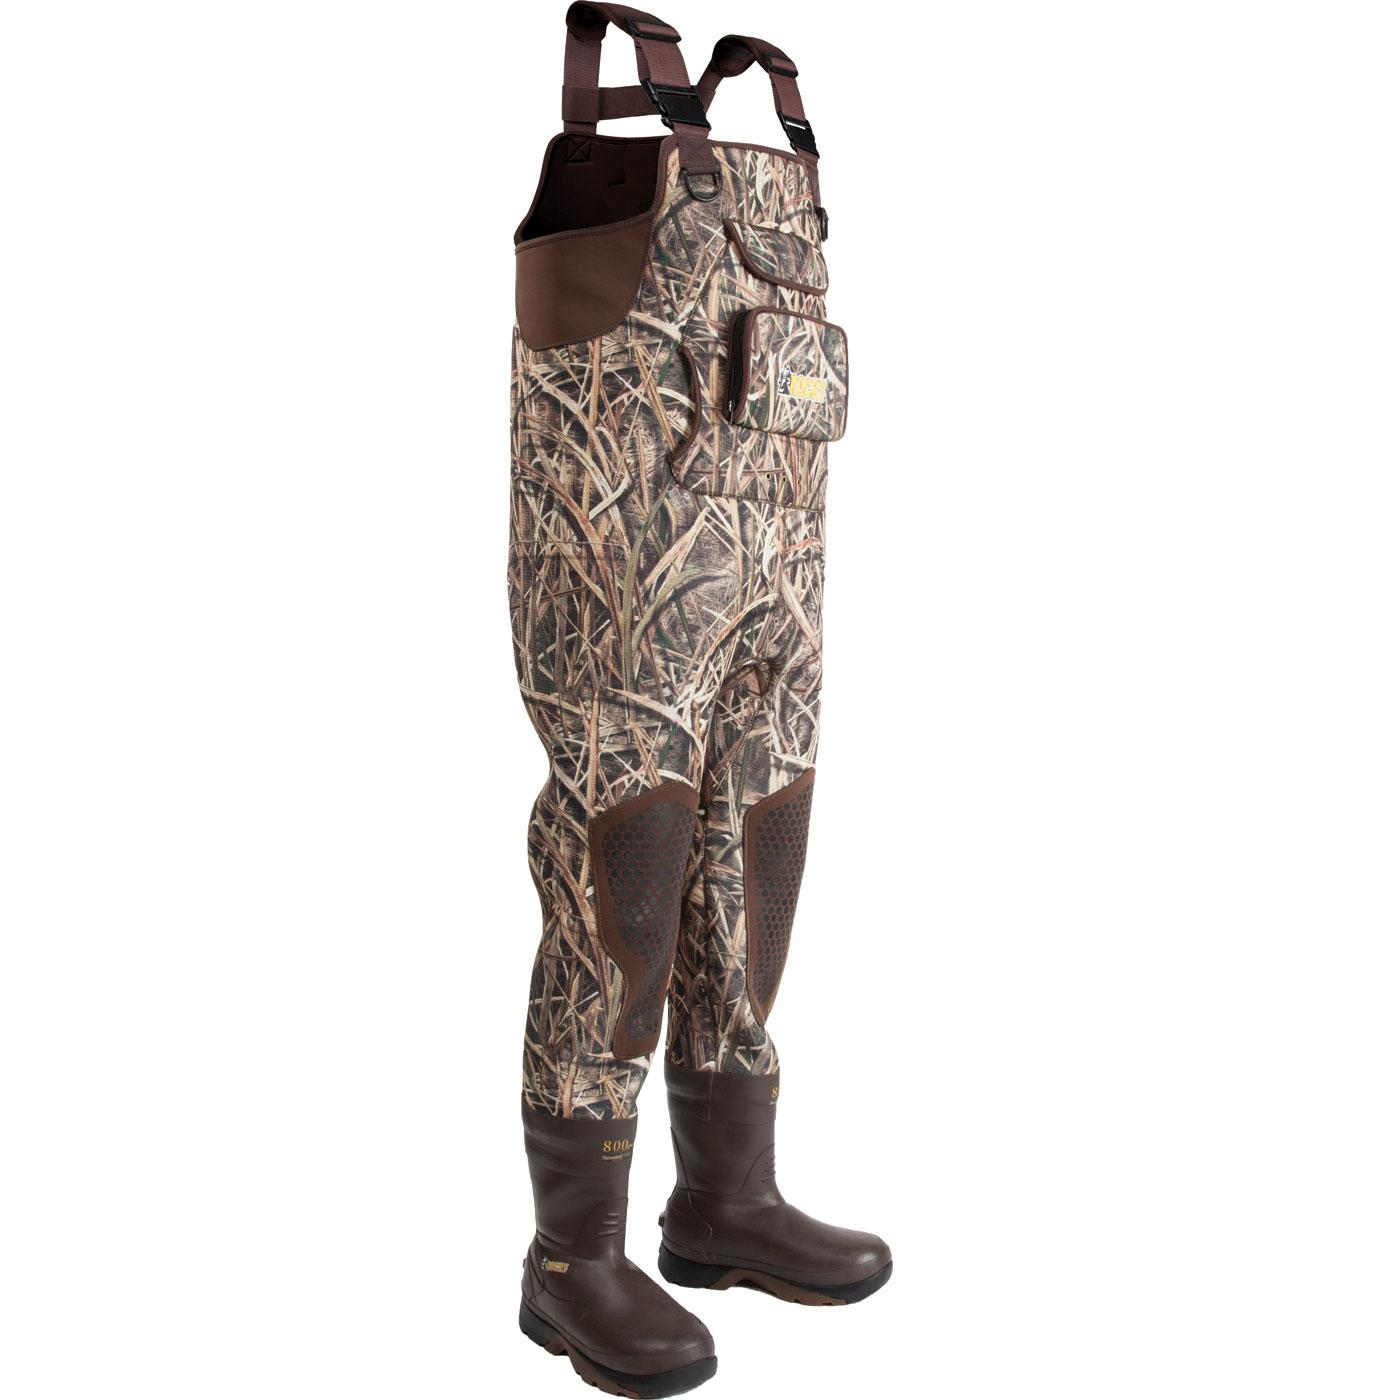 3f5a478ce2e Rocky Waterfowler Waterproof 1000G Insulated Wader